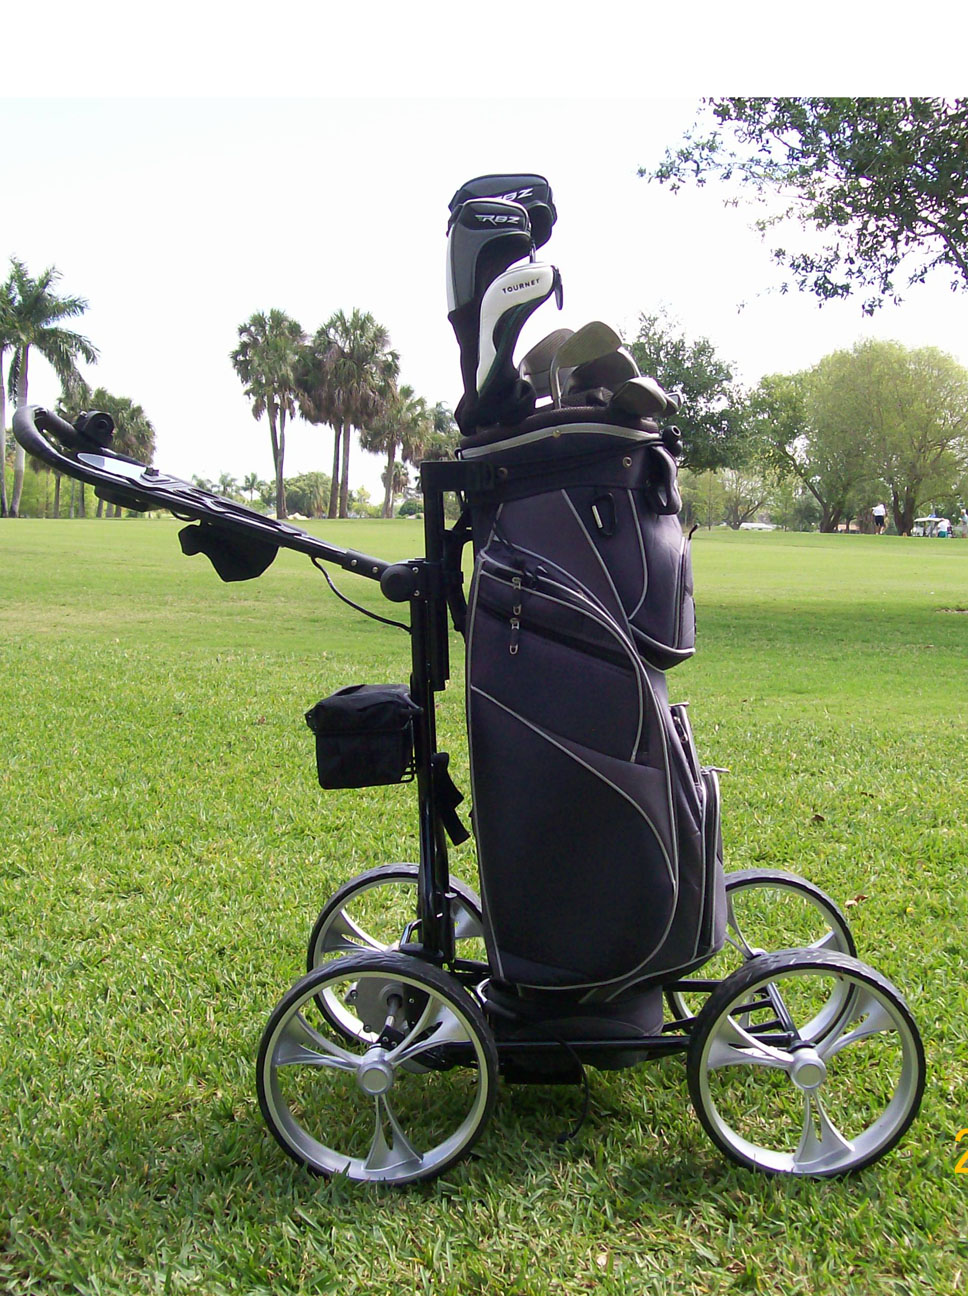 Best Golf Drivers 2014 >> Clever Caddie Motorized Push Cart by Clever Caddie Golf ...